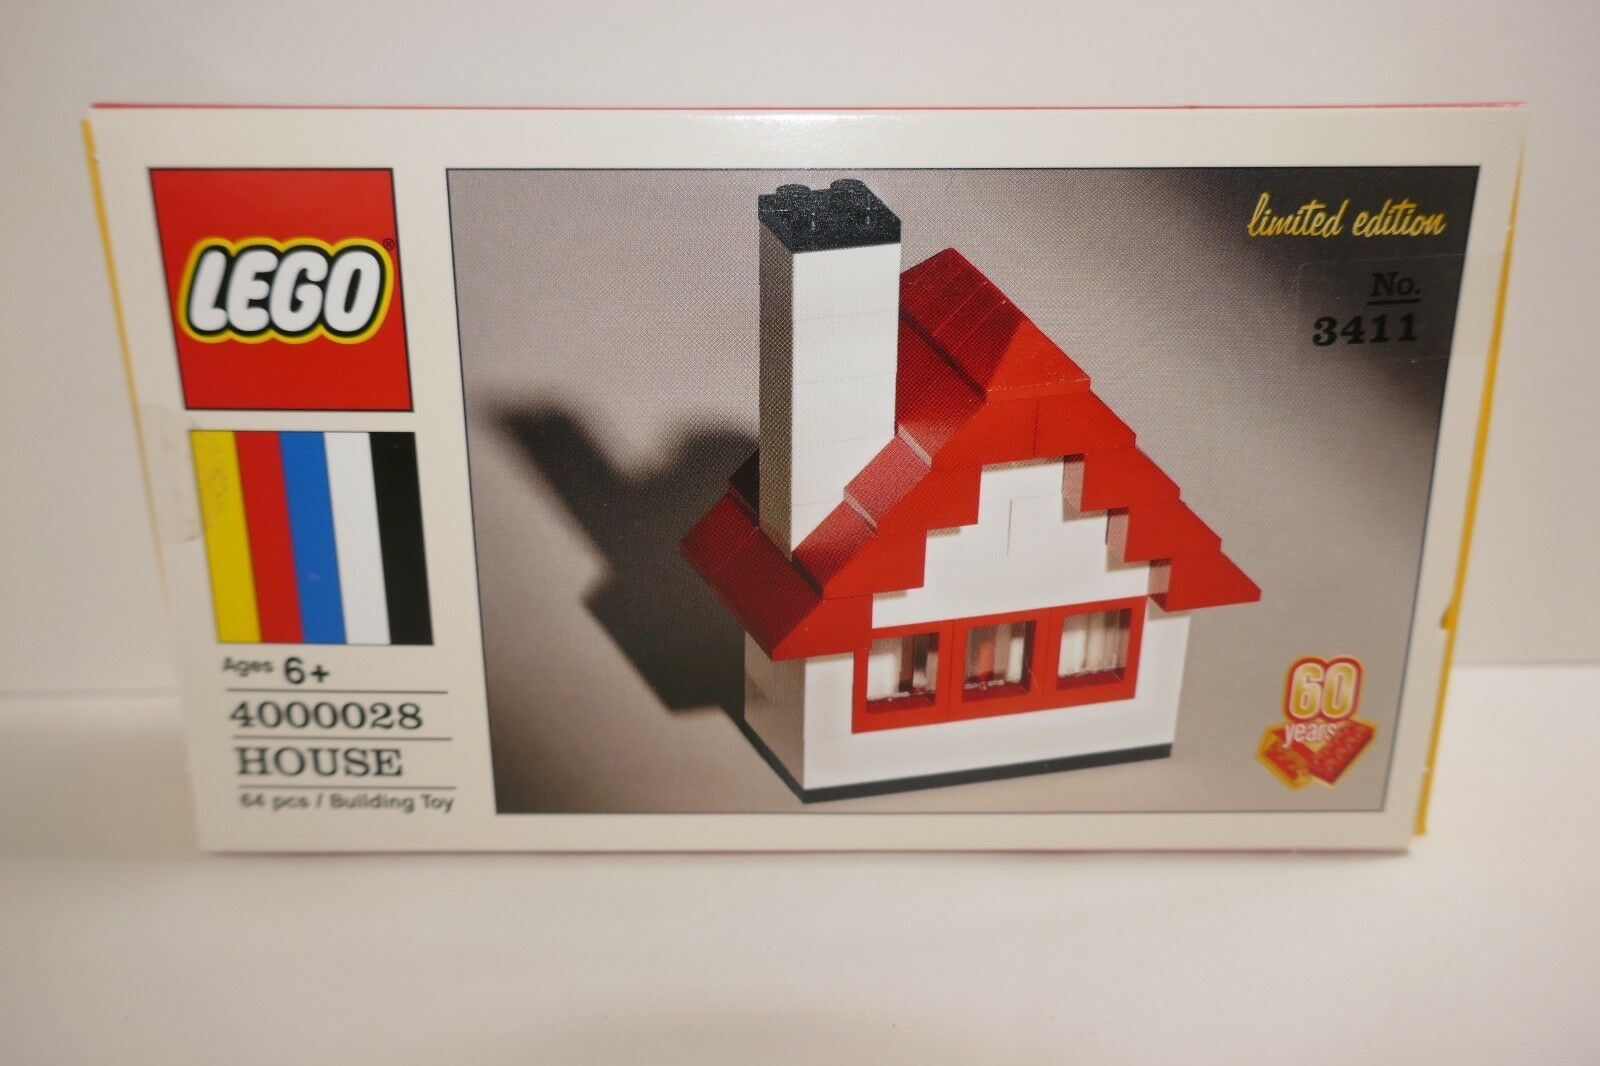 Lego 60th Anniversary Limited Edition House  4000028 RARE NumbeROT Box BRAND NEW